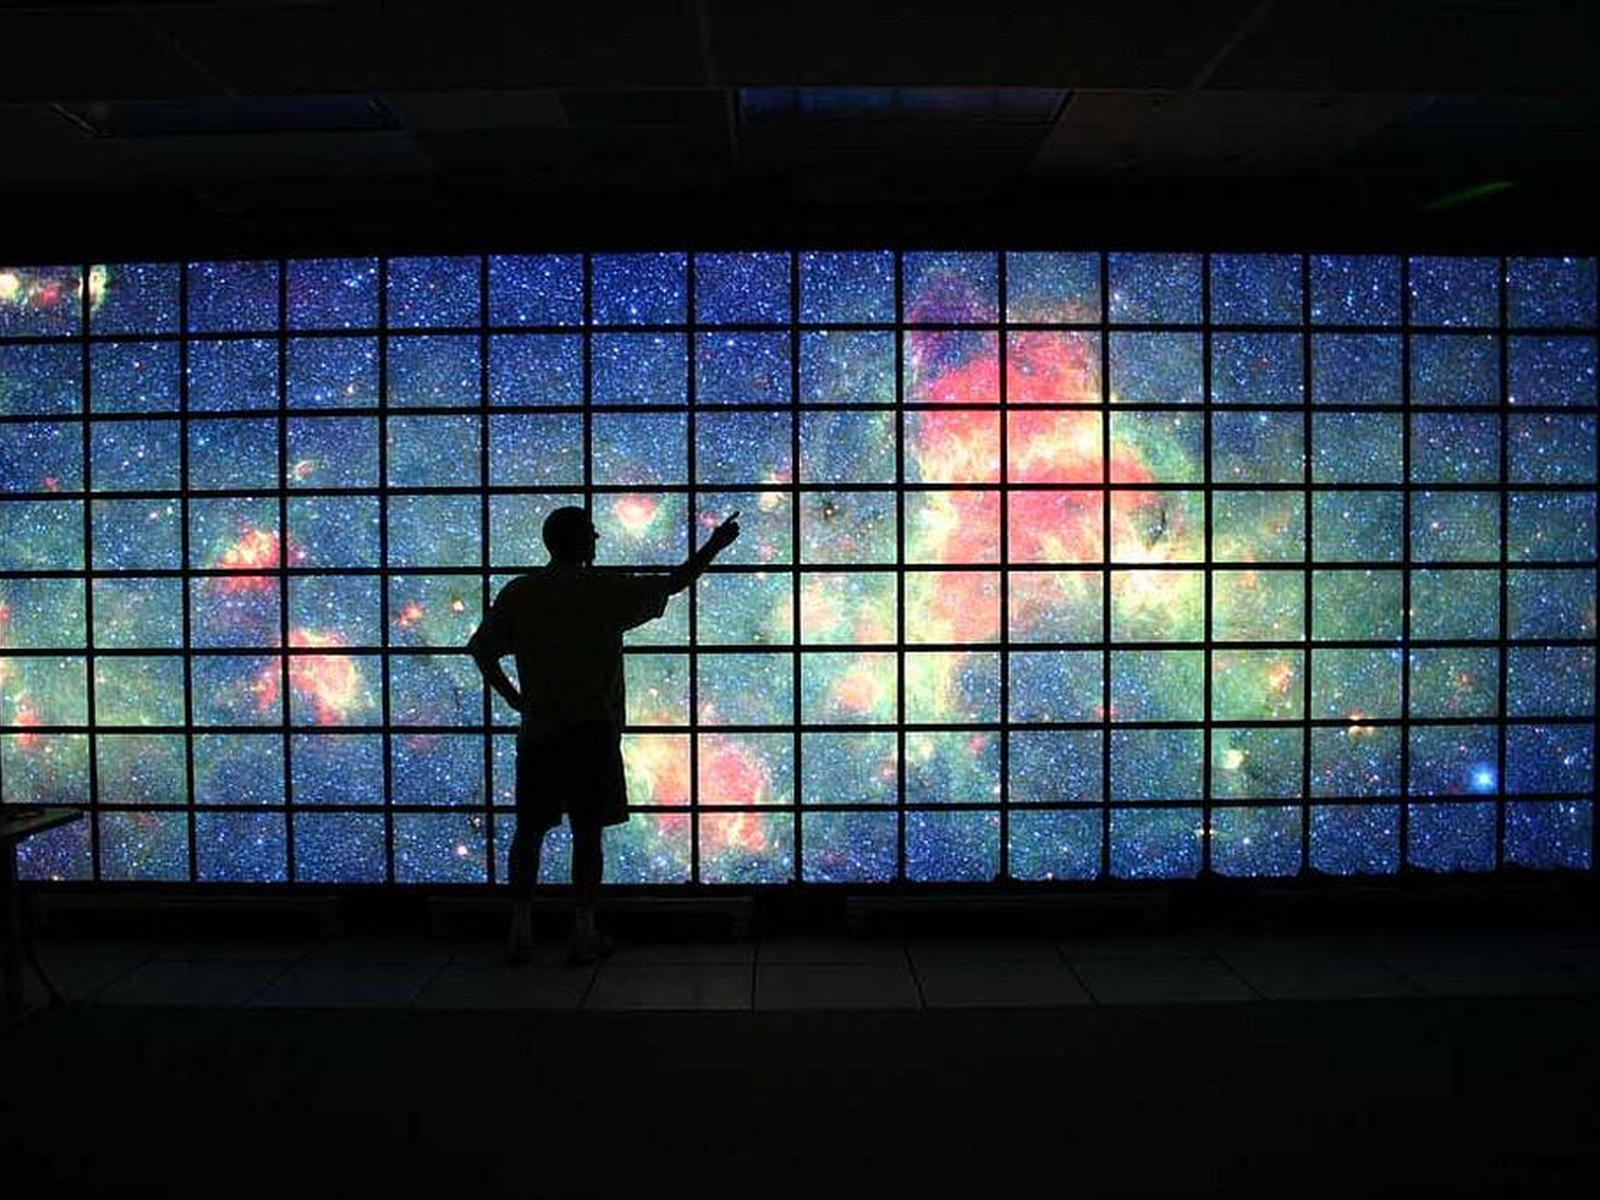 Milky Way on LCD Science Visualization Screen